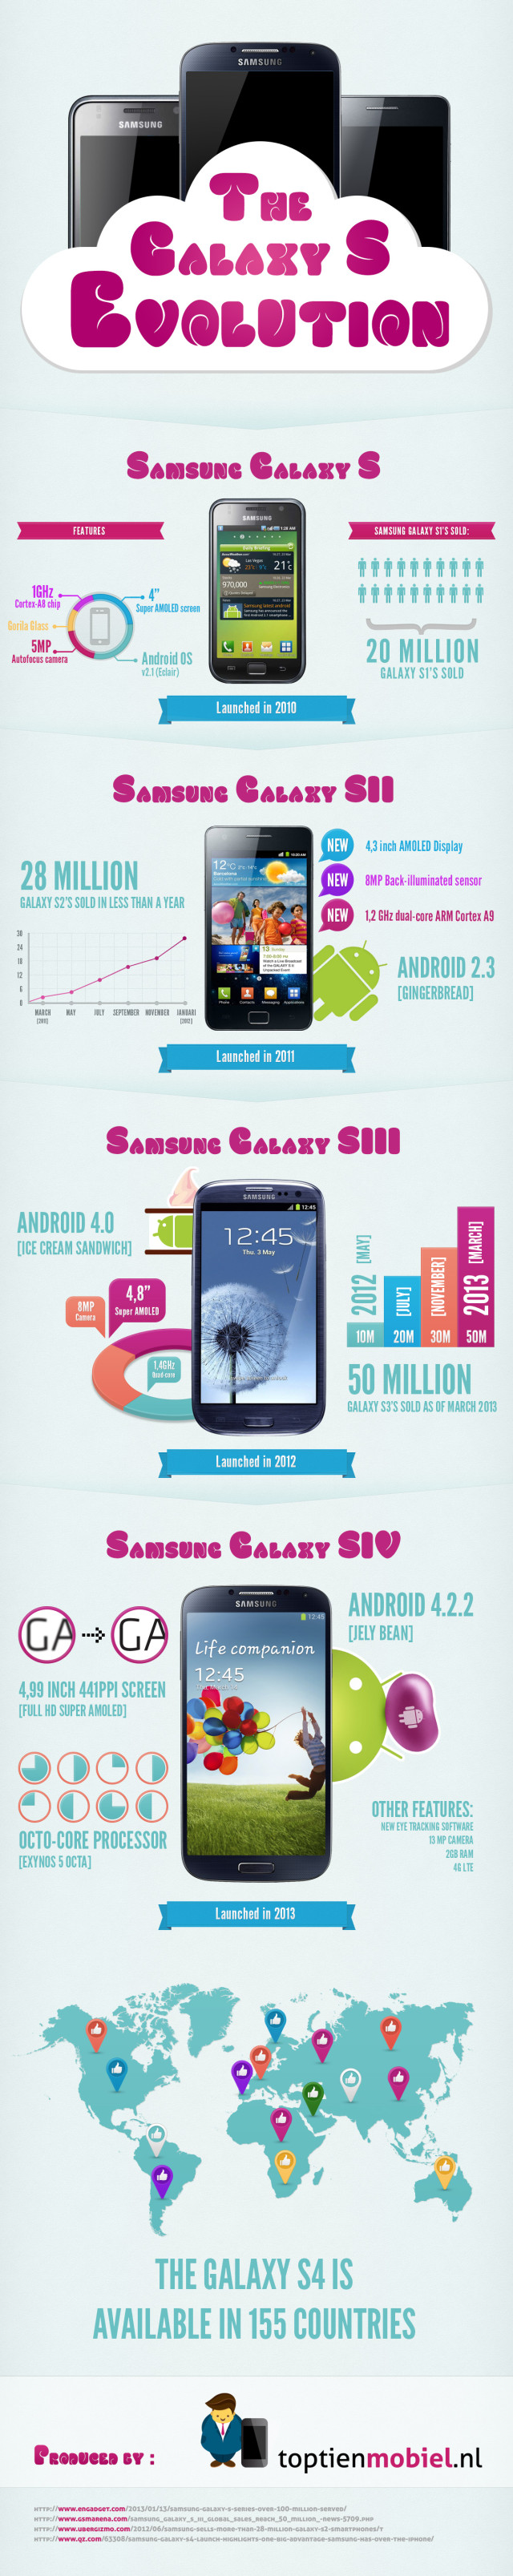 samsung-galaxy-s-evolution-infografik